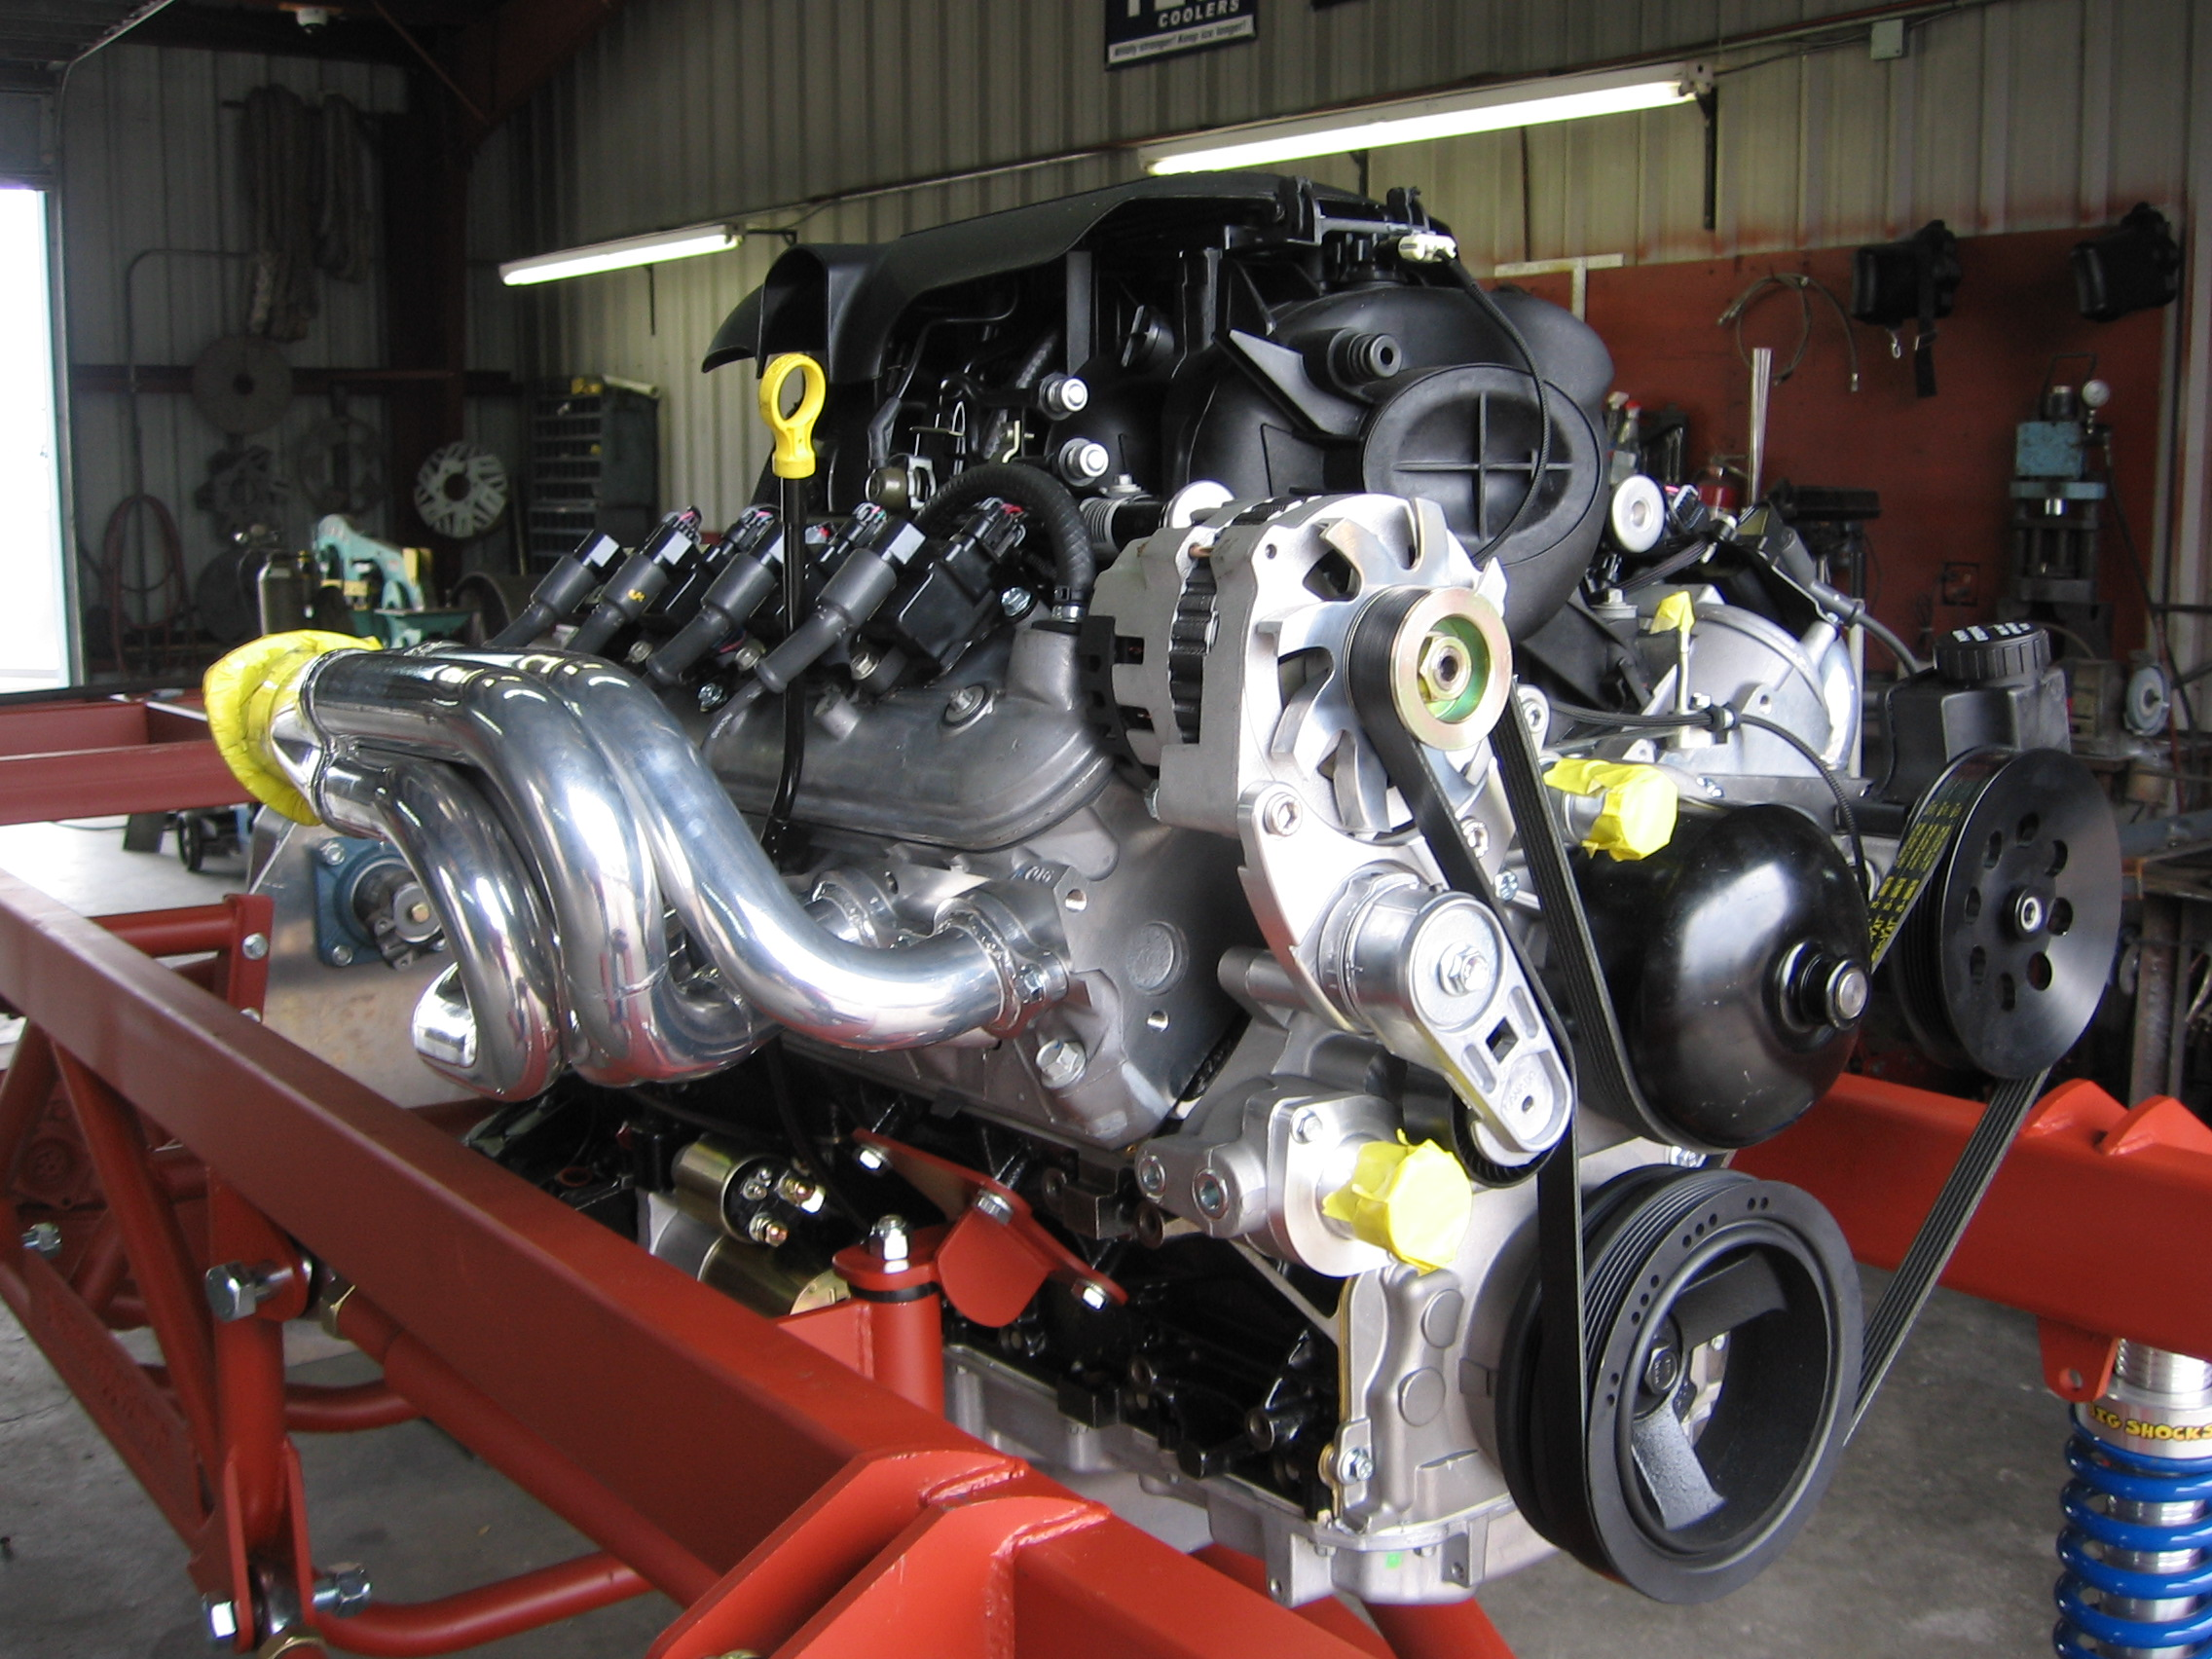 Part Section: Engines and Components